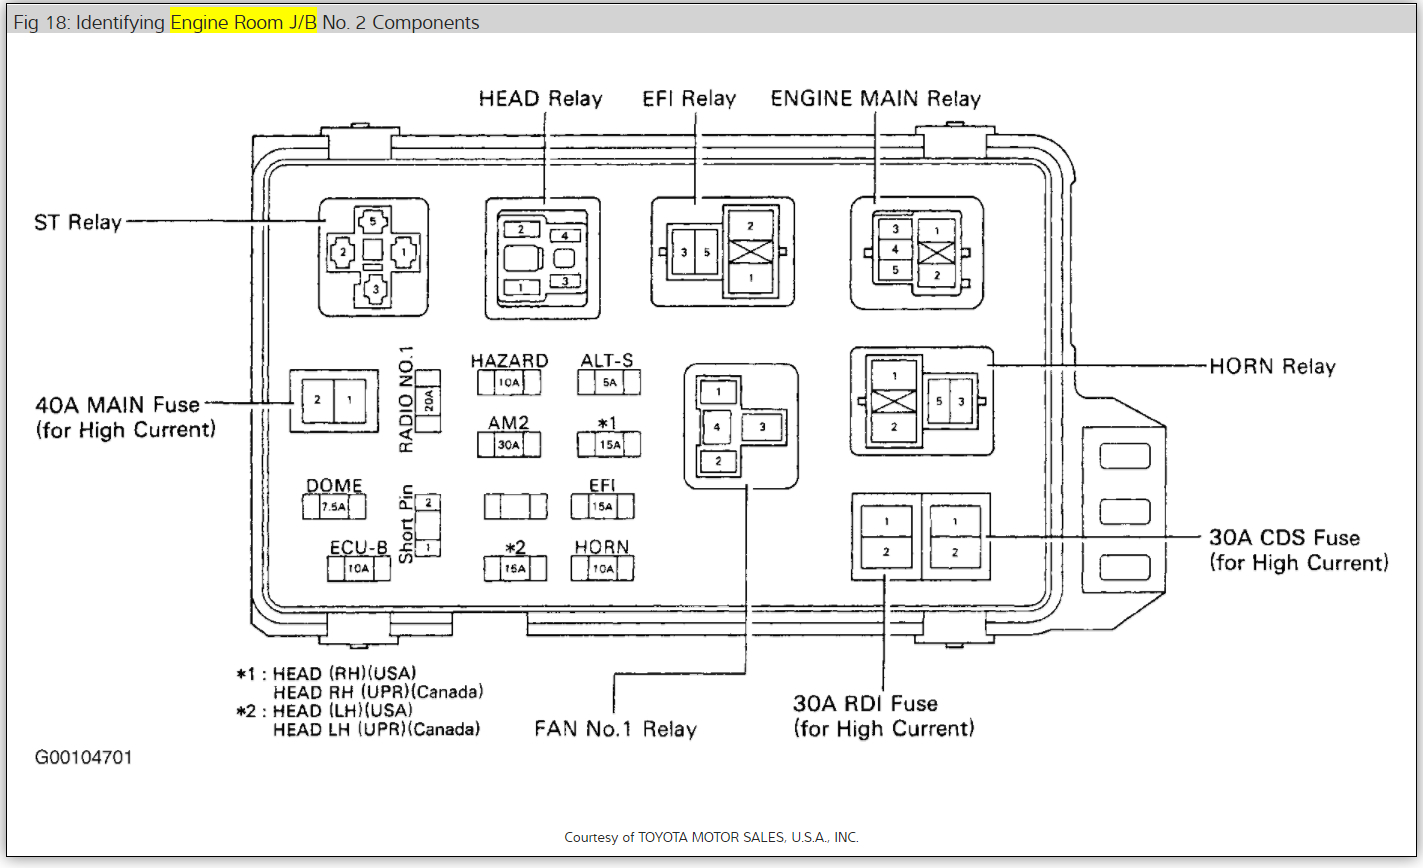 1998 Camry Fuse Box Diagram Schematics 1999 Avalon Wiring Will Be A Thing U2022 2000 Toyota Le Location